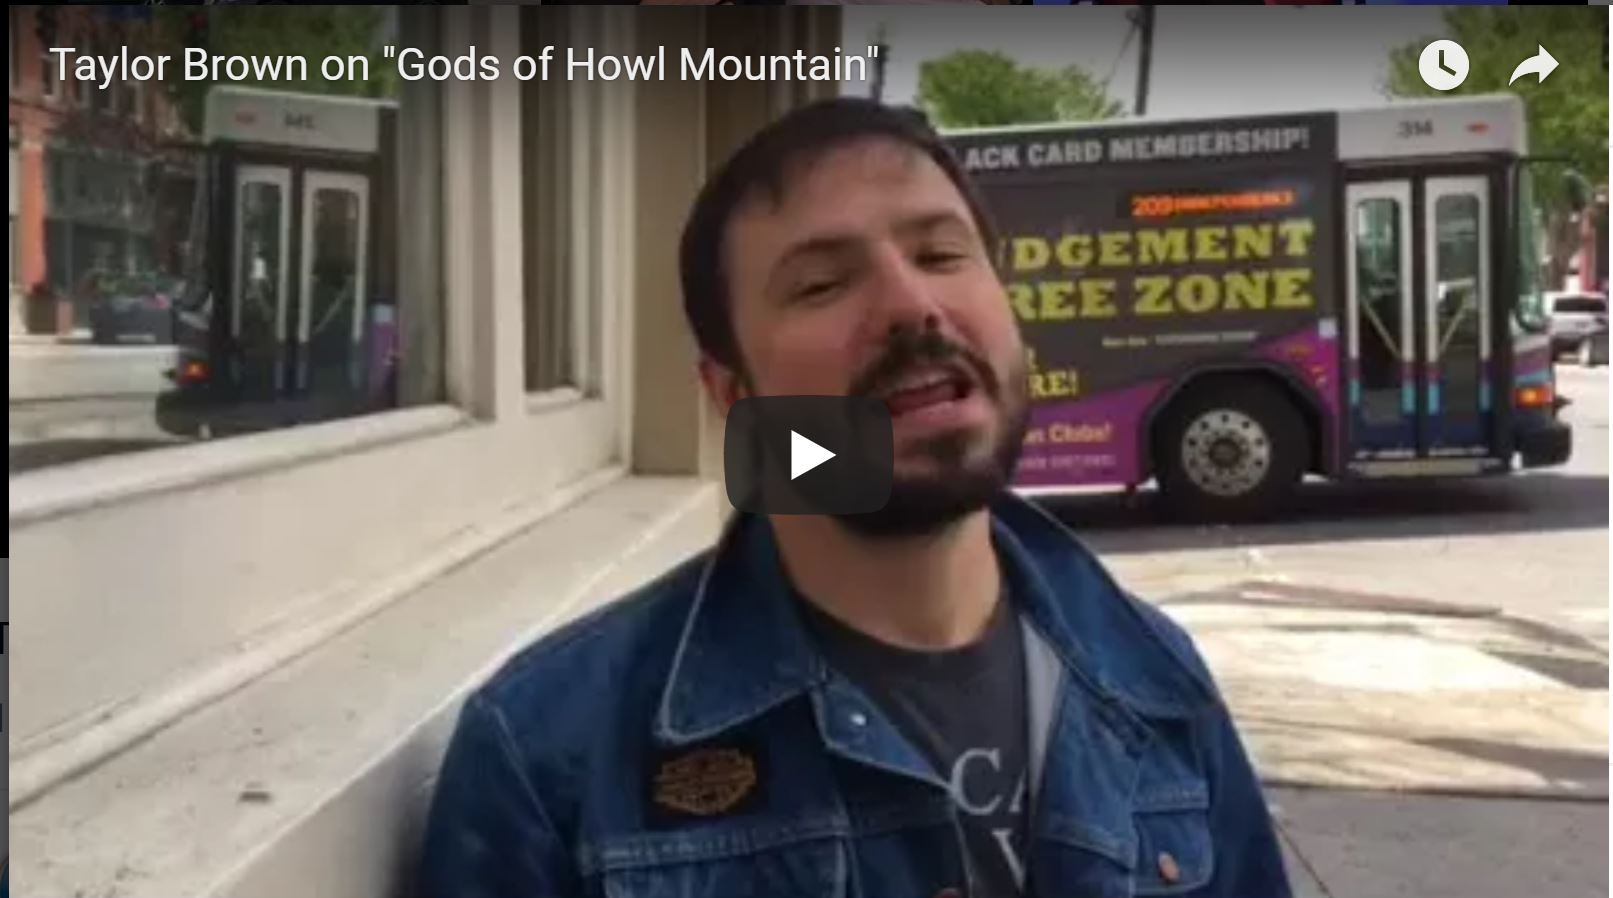 The Gods of Howl Mountain